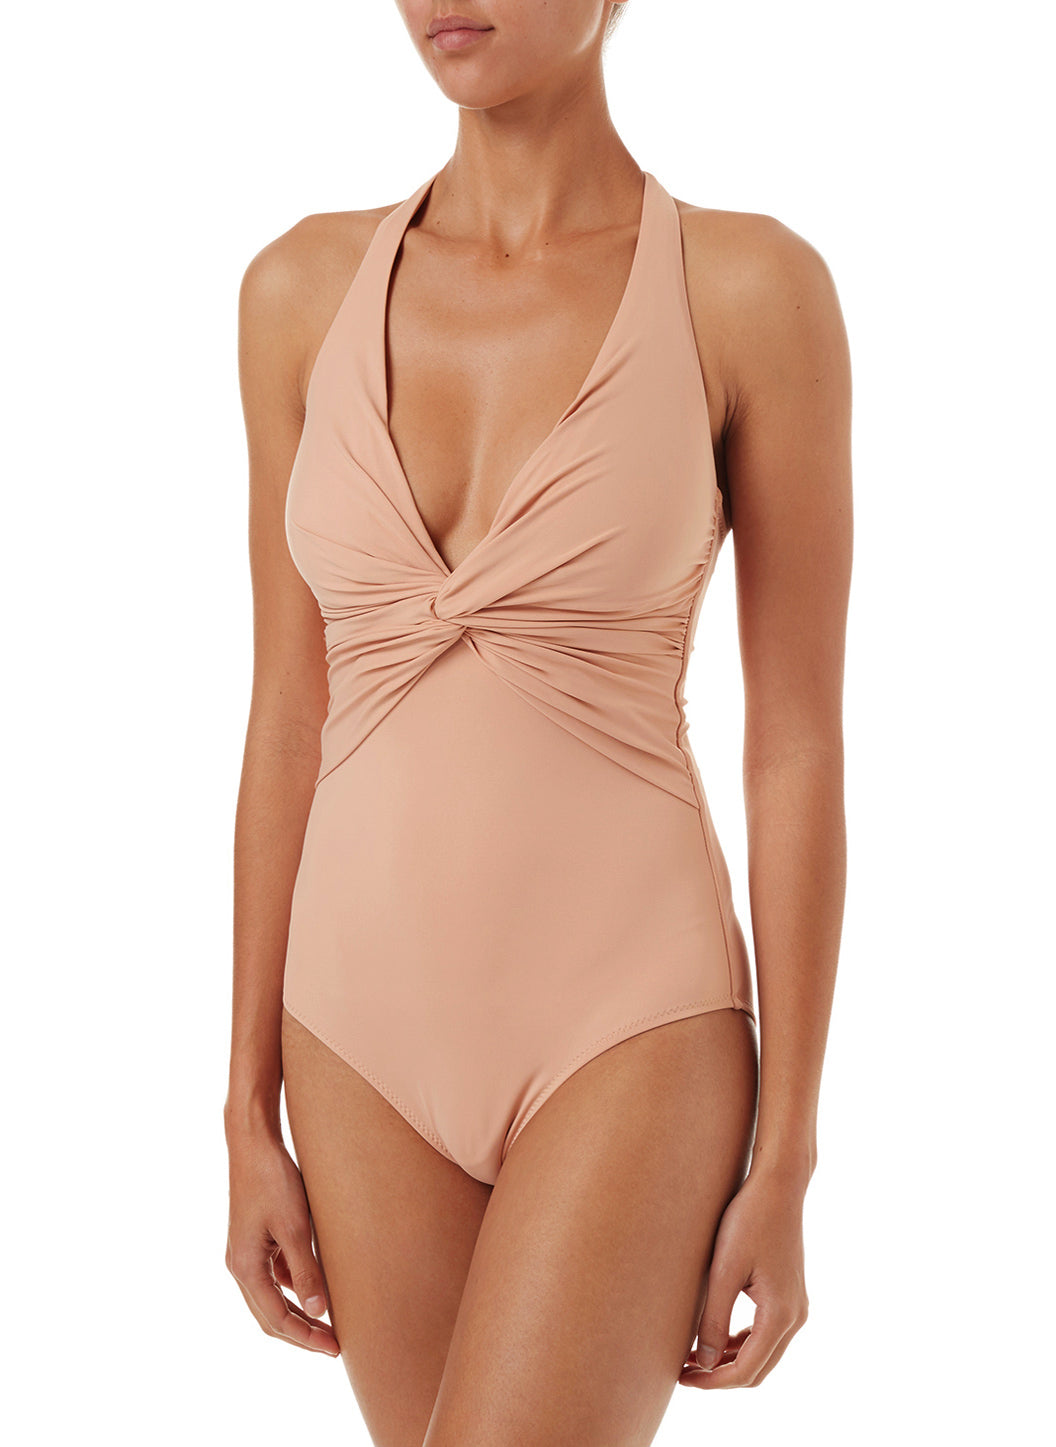 Zanzibar Tan Halterneck Ruched Knot Swimsuit - Melissa Odabash One Piece